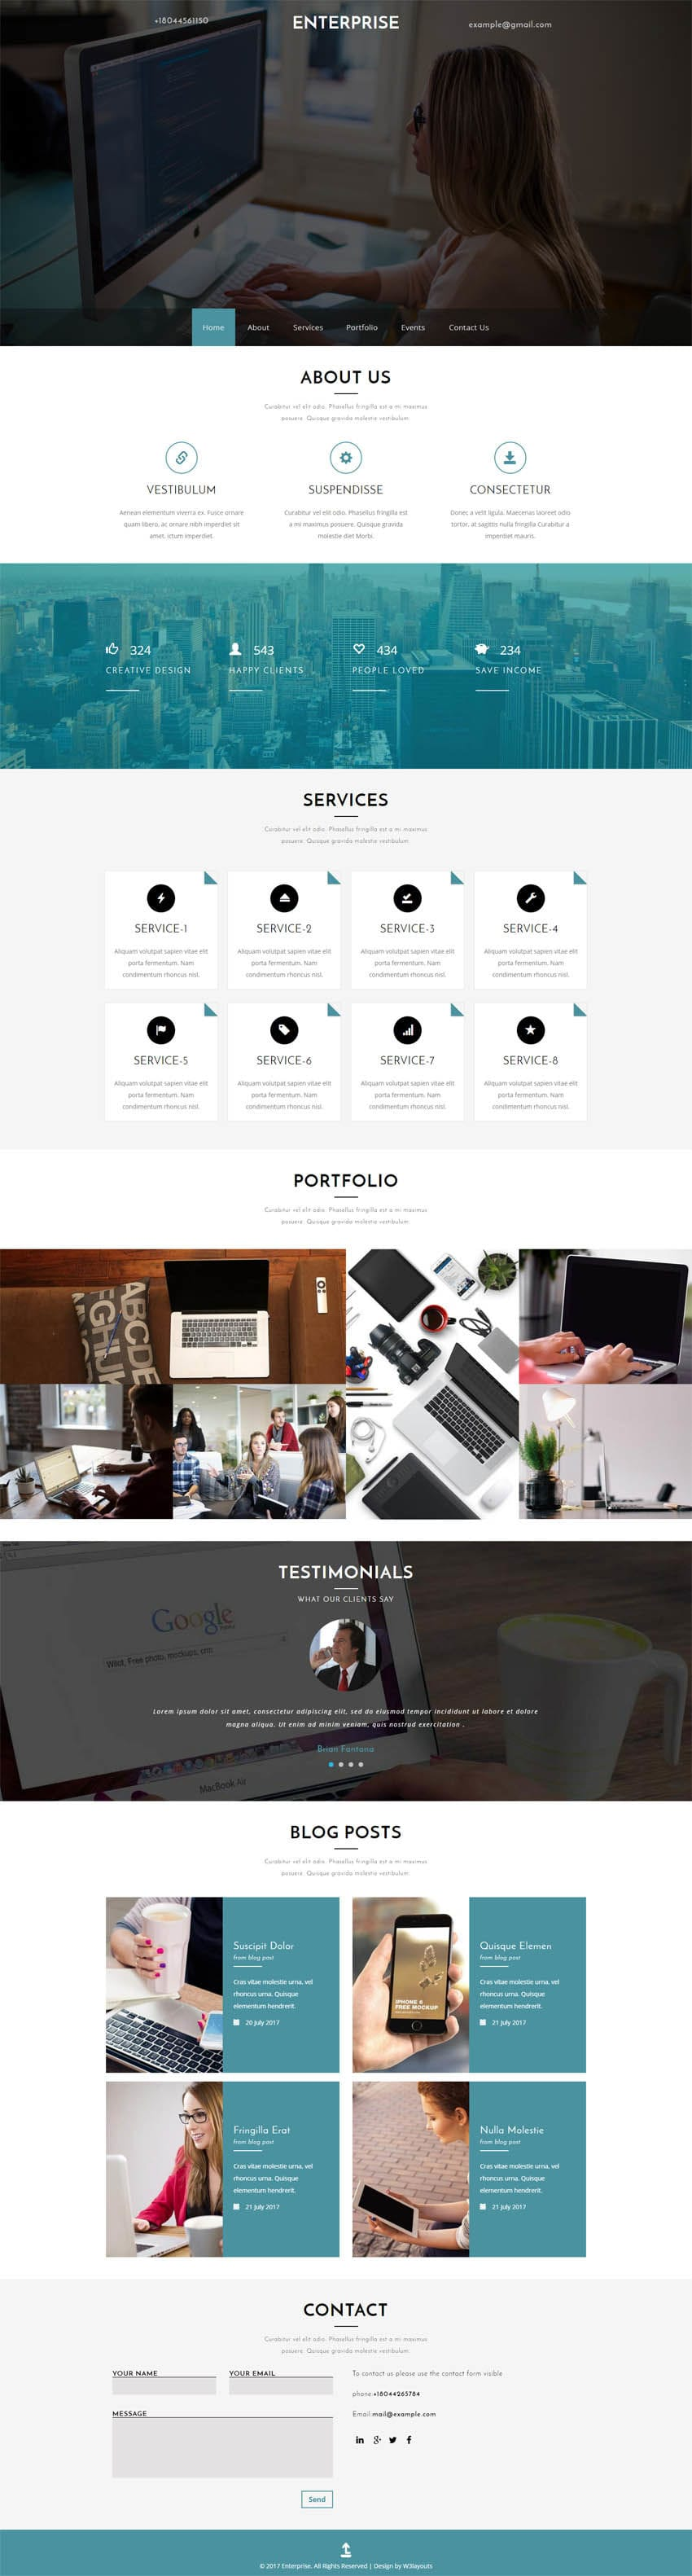 Enterprise a Corporate Category Flat Bootstrap Responsive